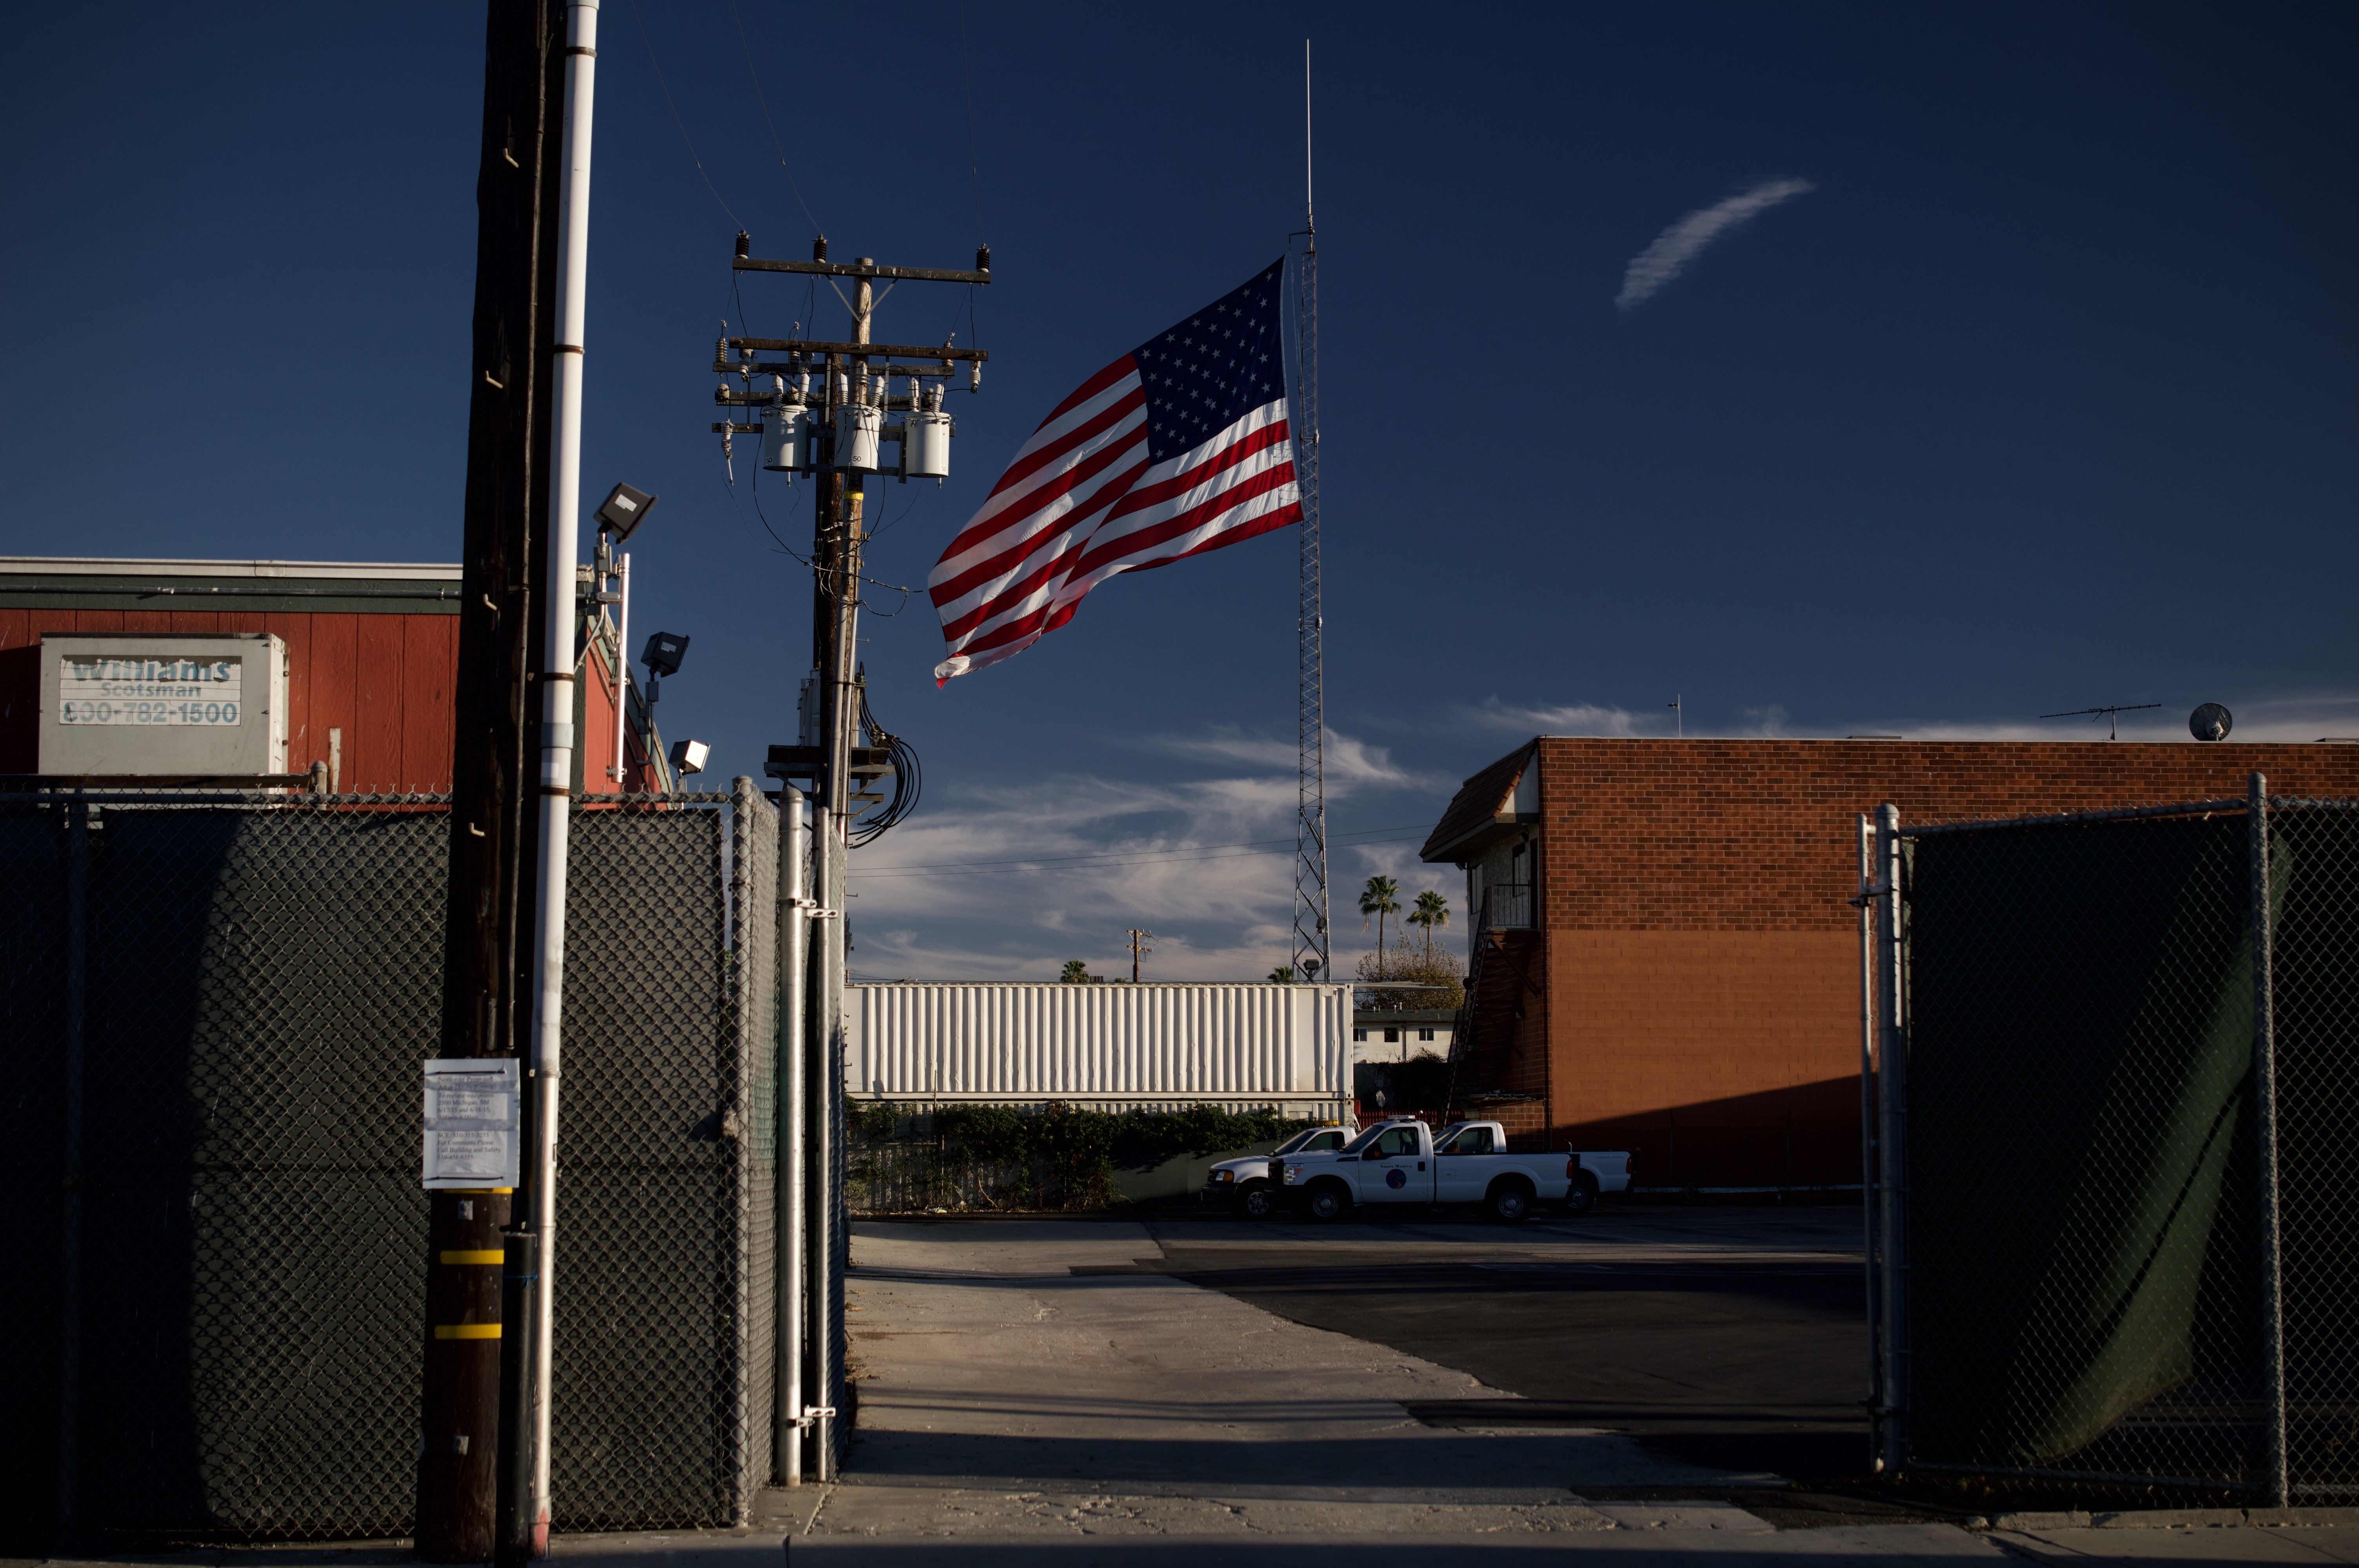 File:Views around Los Angeles with the American flag 02.jpg